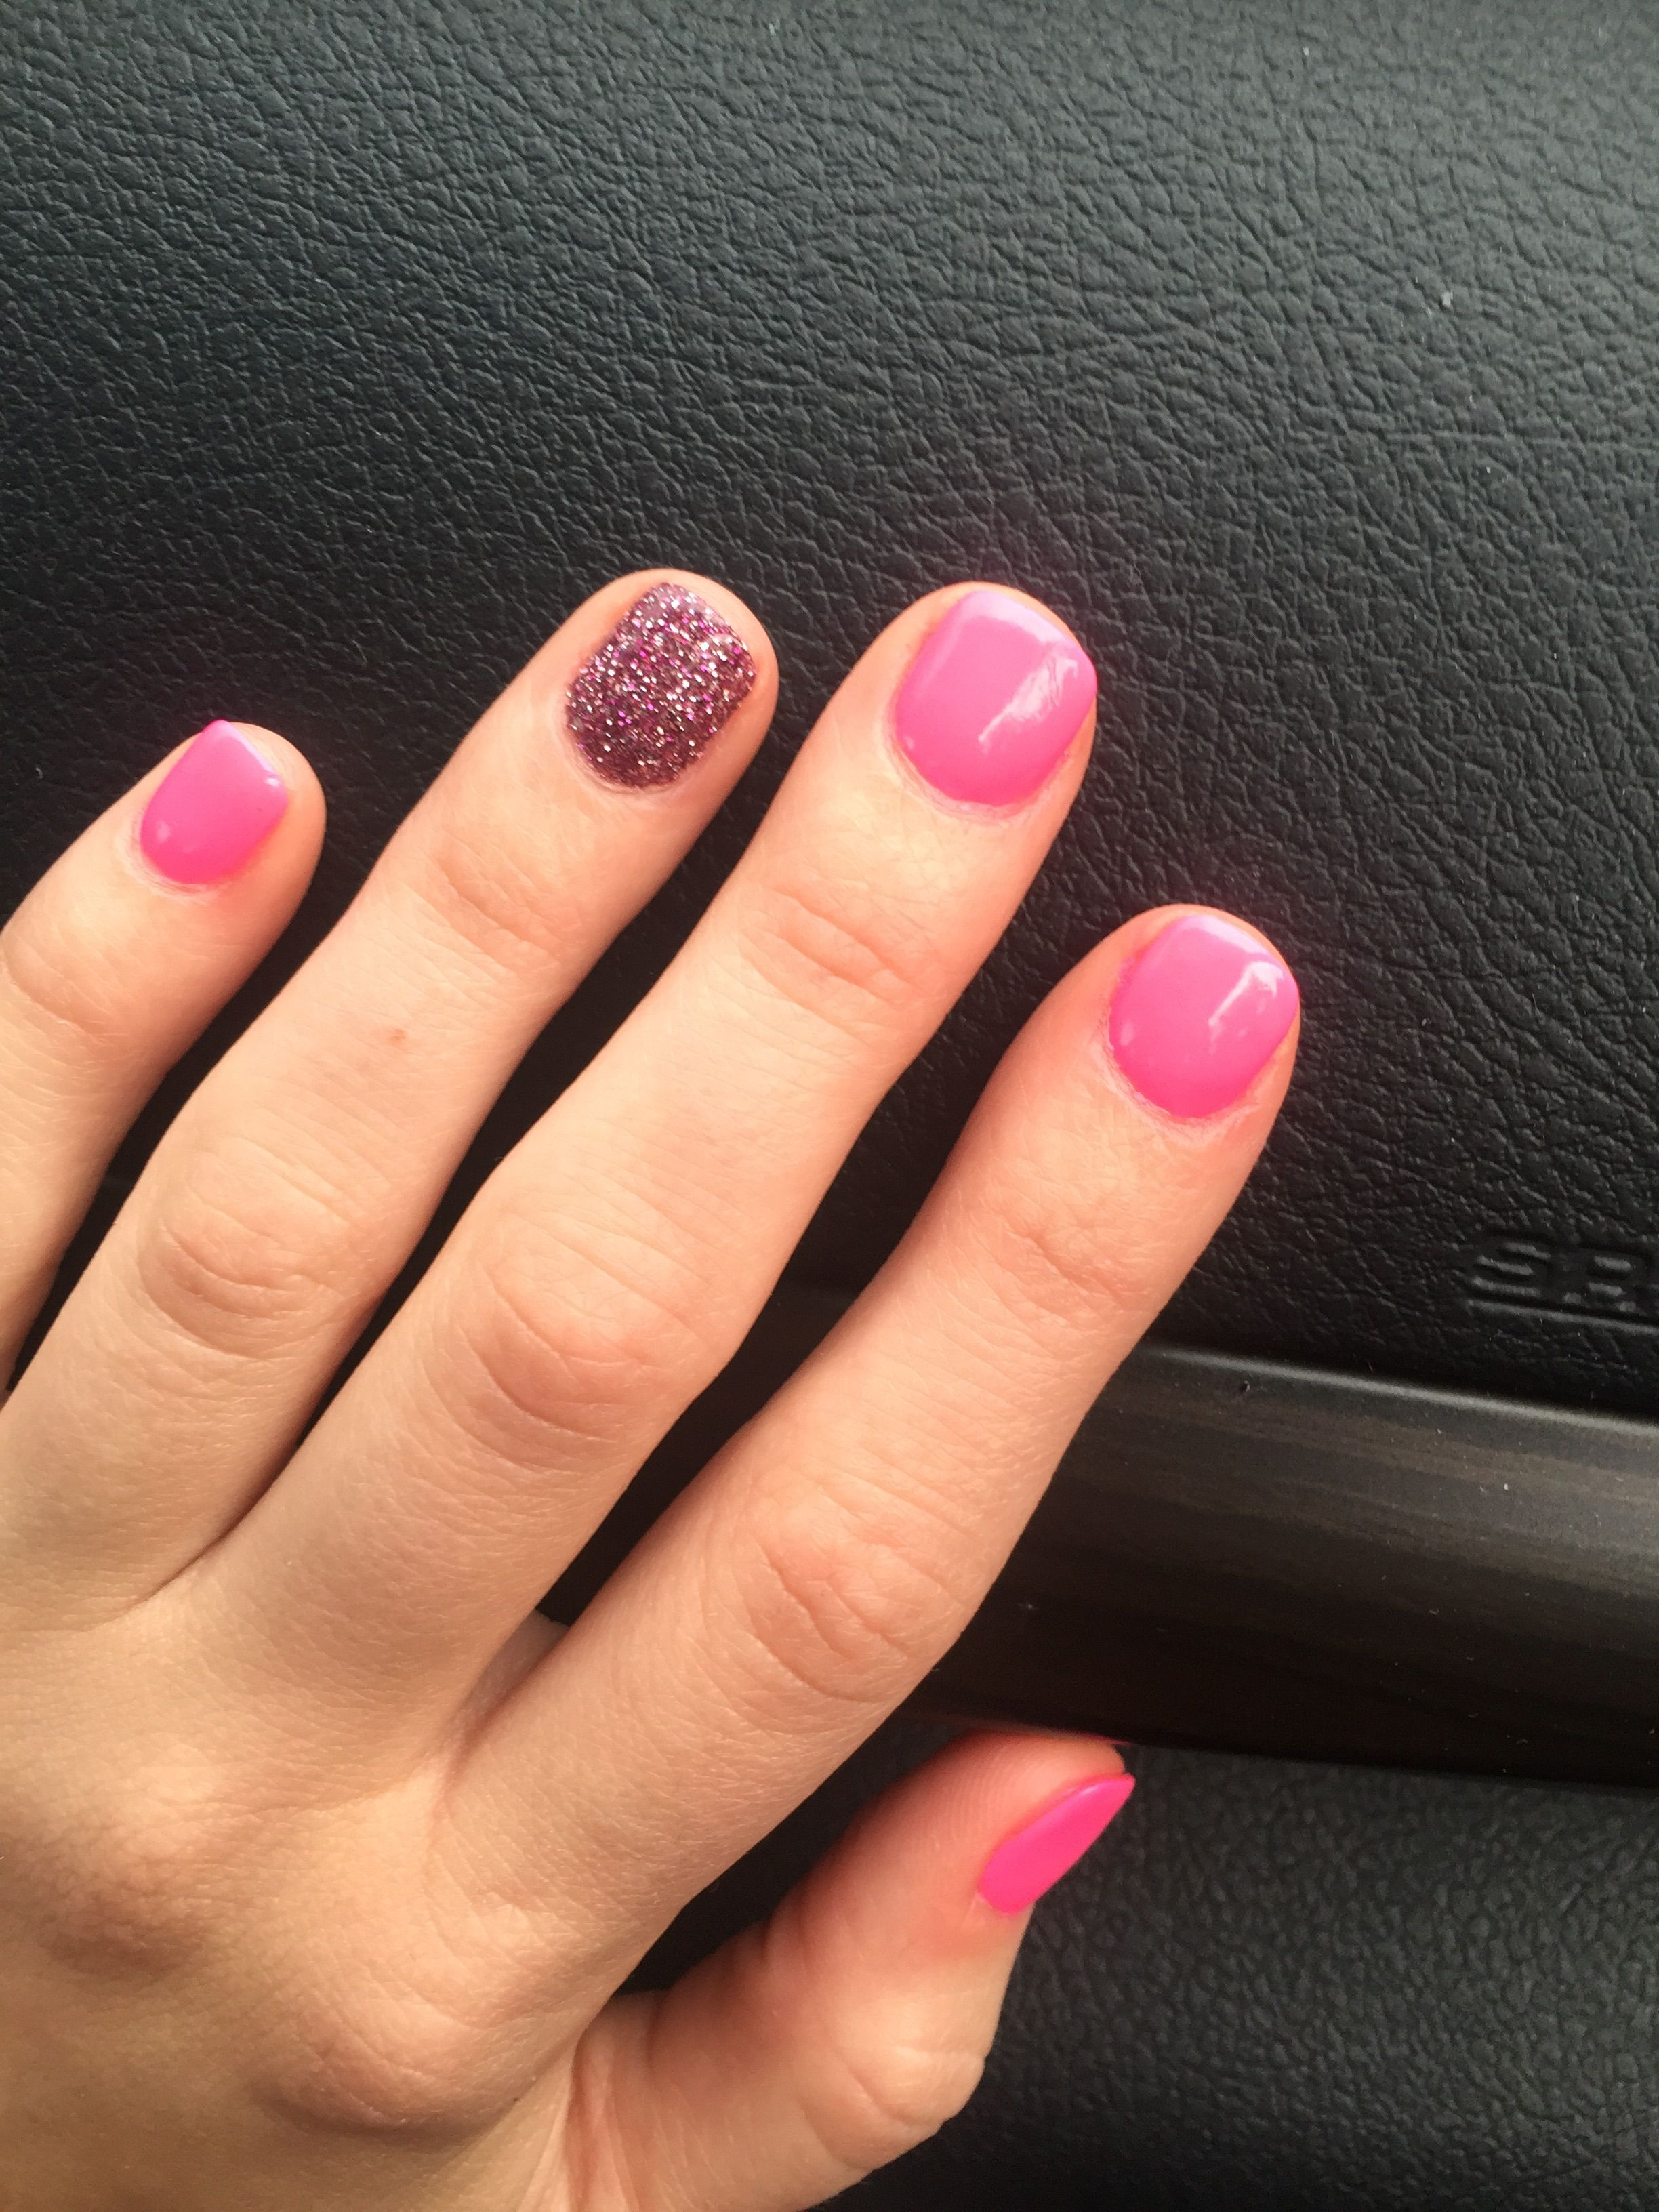 SNS neon pink nails with sparkles | Nails | Pinterest | Neon pink ...